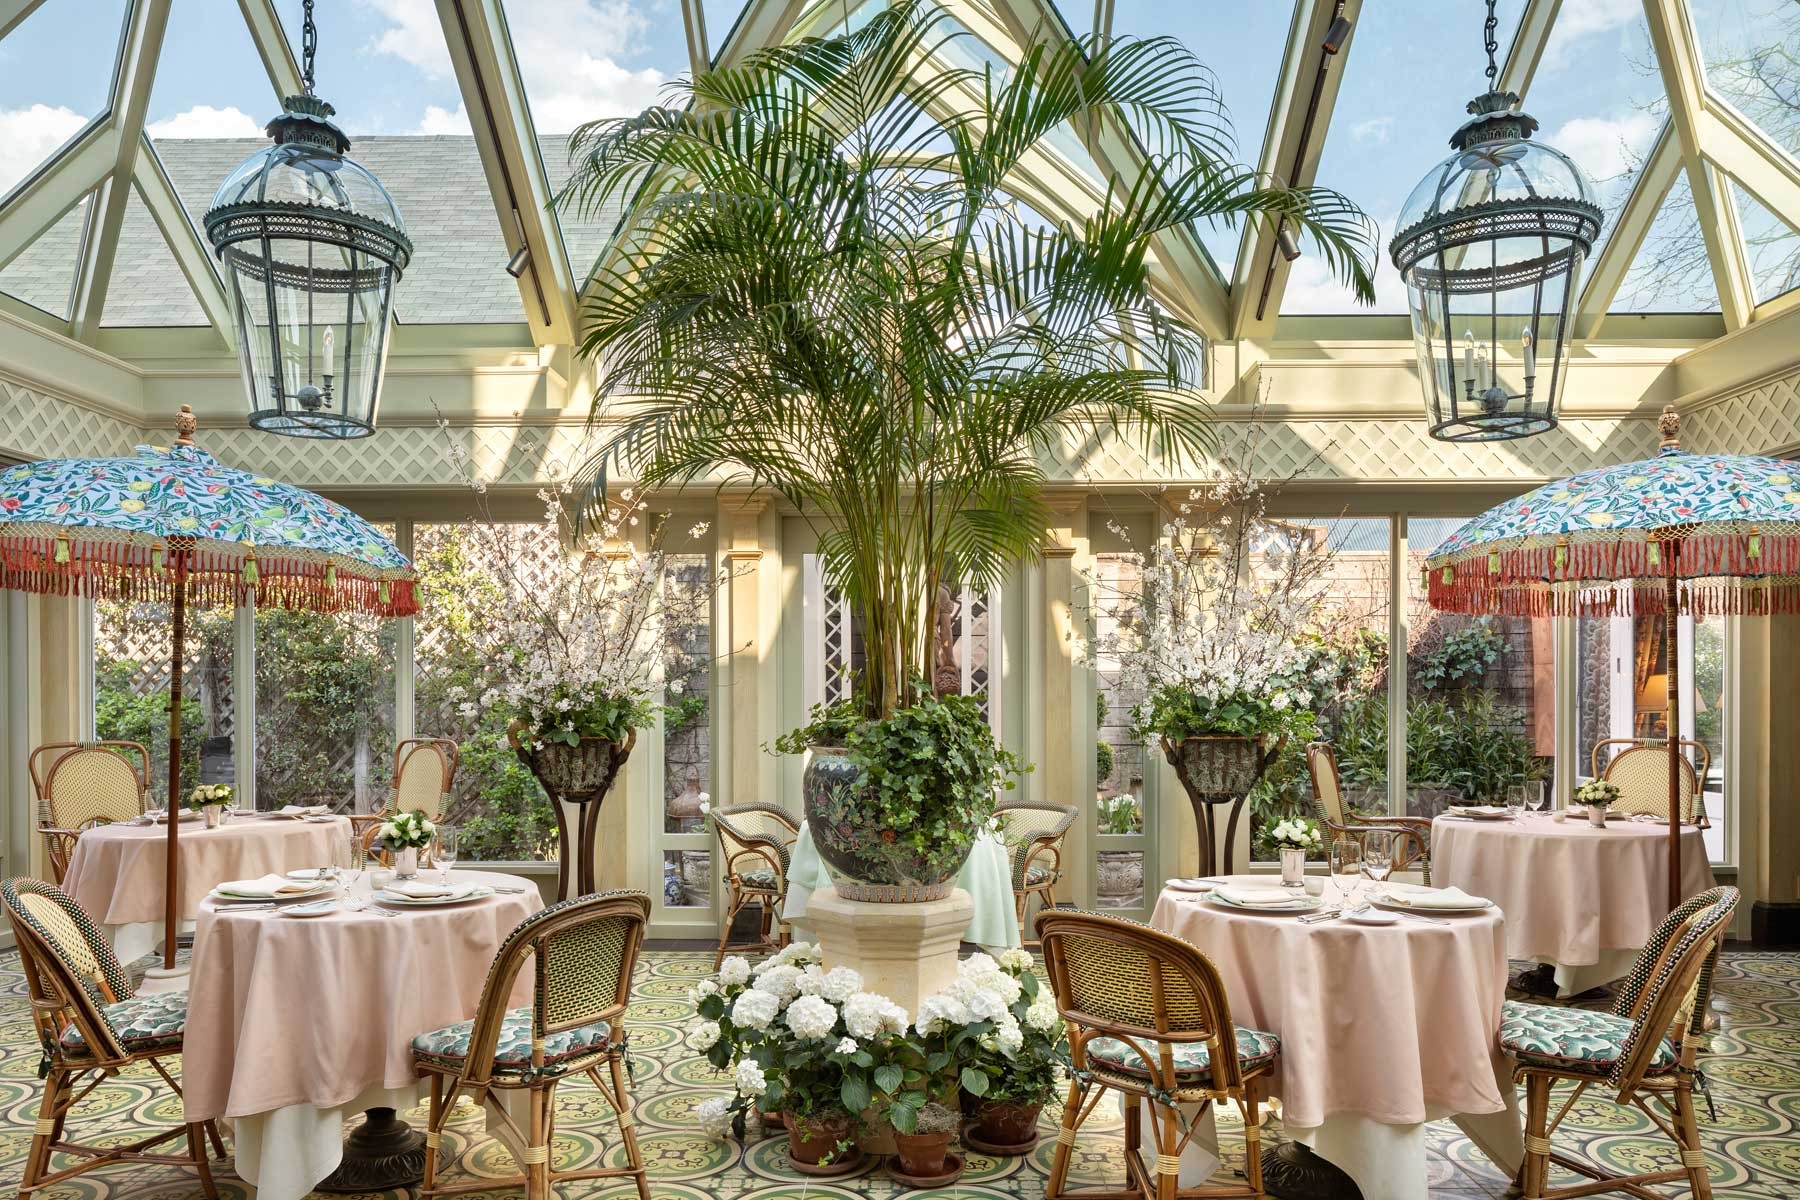 Daytime photo of the conservatory.